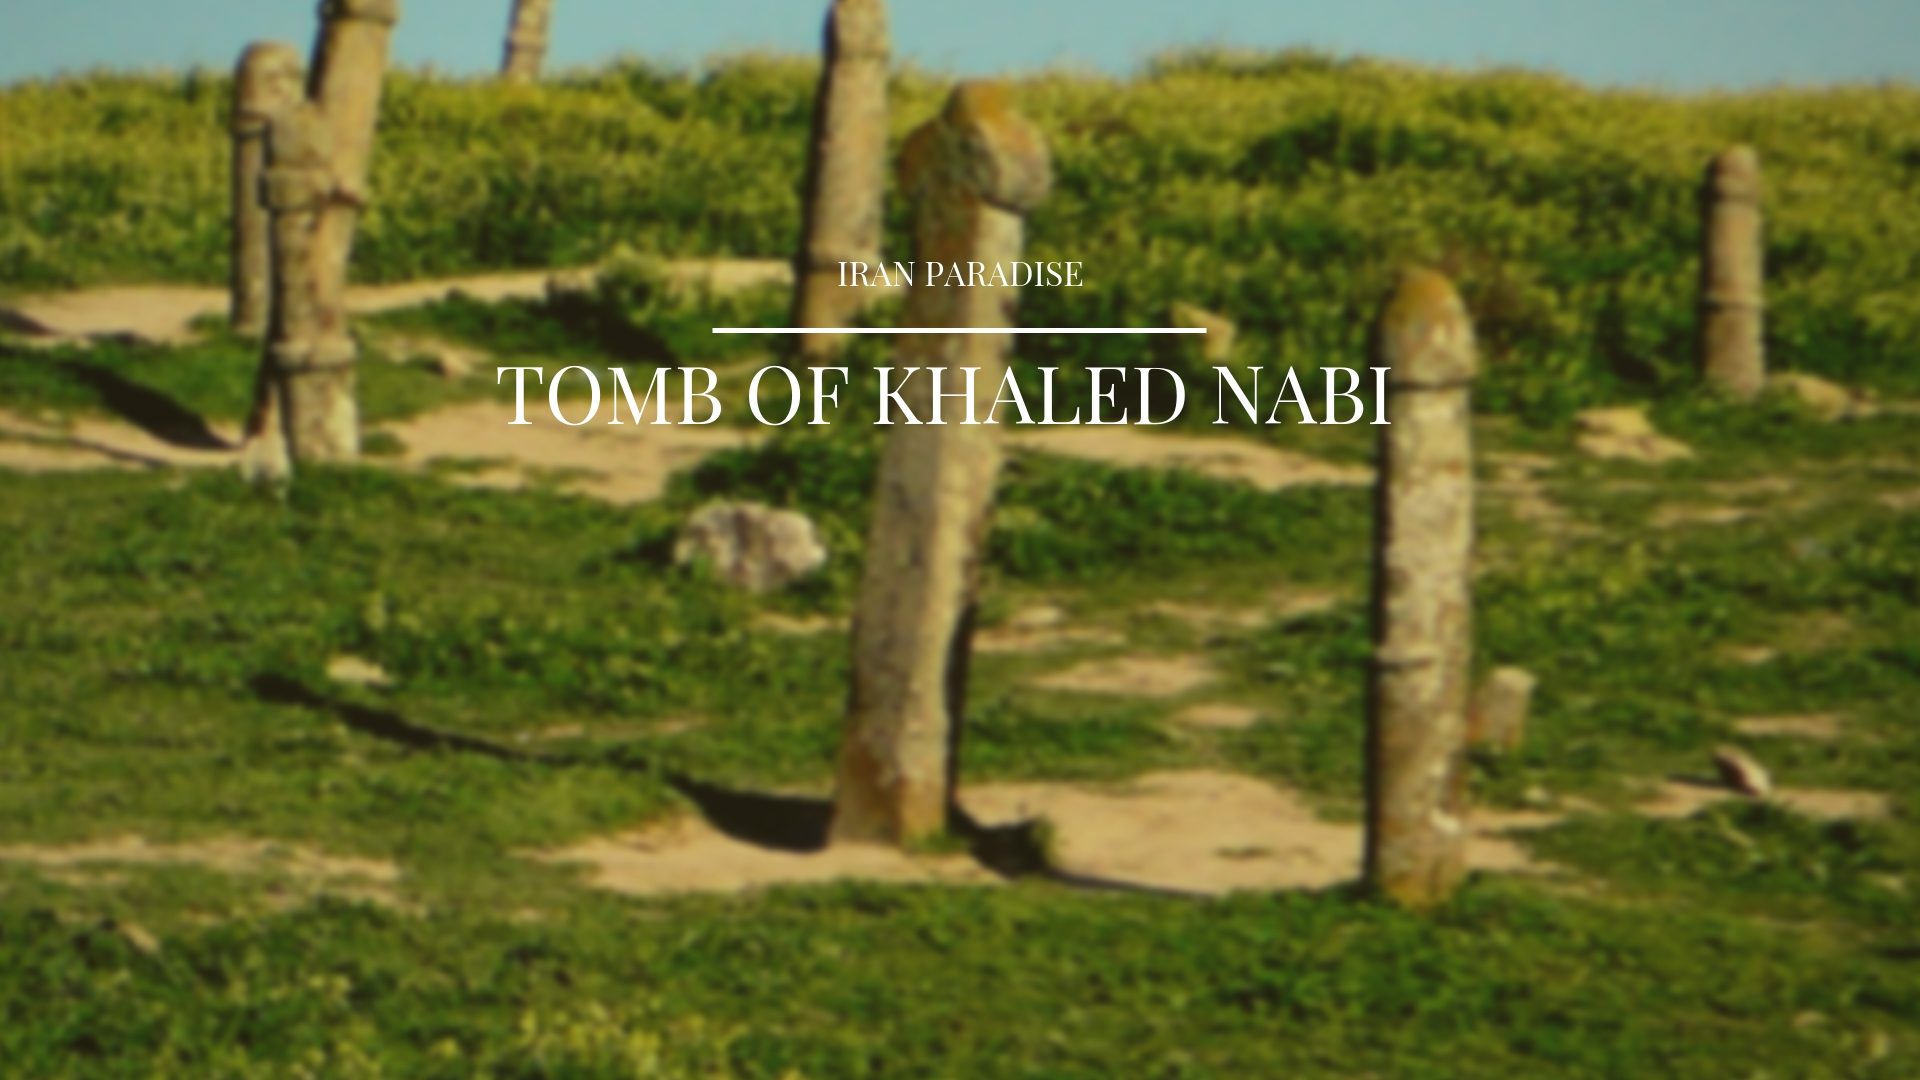 TOMB OF KHALED NABI